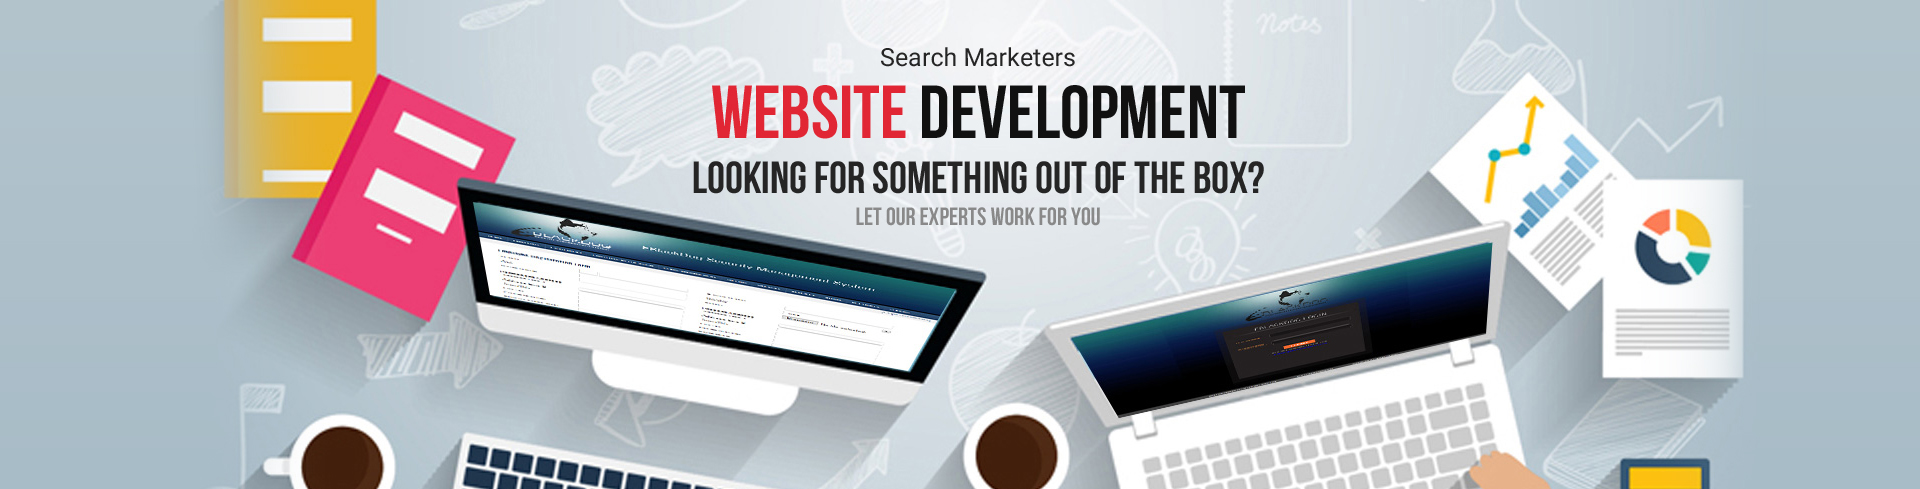 Searchmarketers_banner A